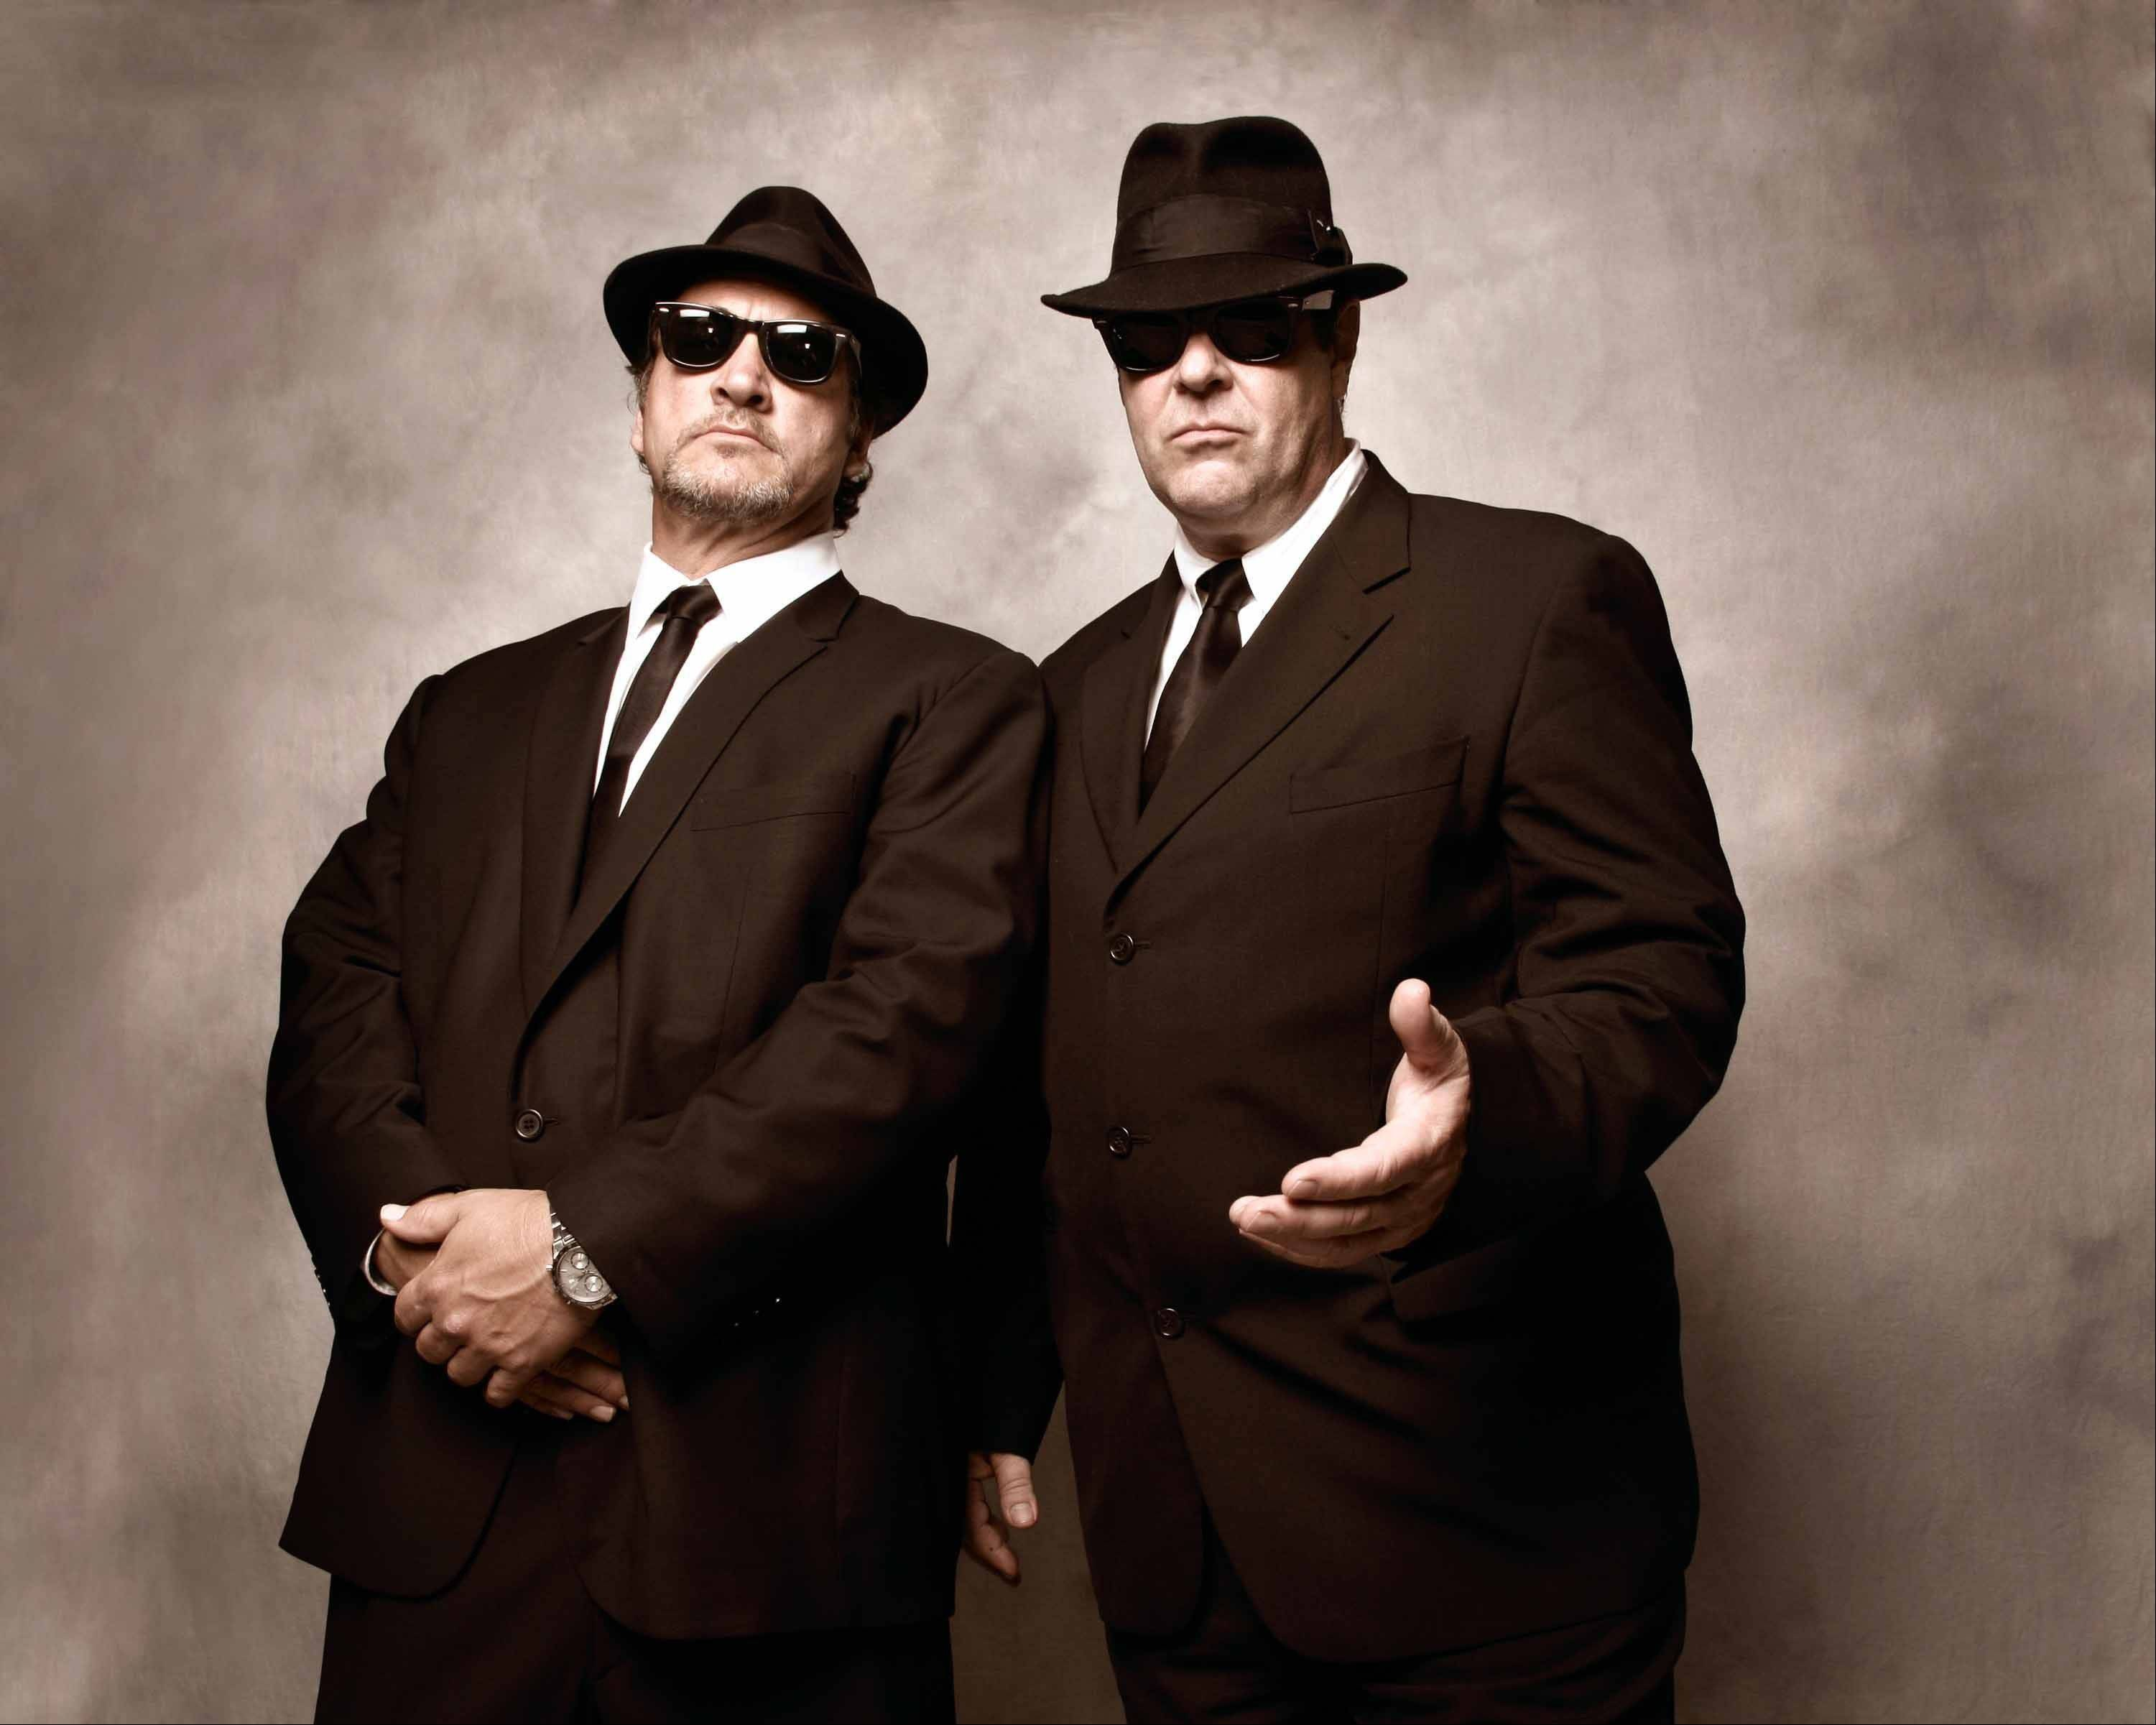 Jim Belushi and Dan Aykroyd appear as The Blues Brothers and perform with The Sacred Hearts at 8 p.m. Wednesday, July 11, the Ravinia Festival in Highland Park.